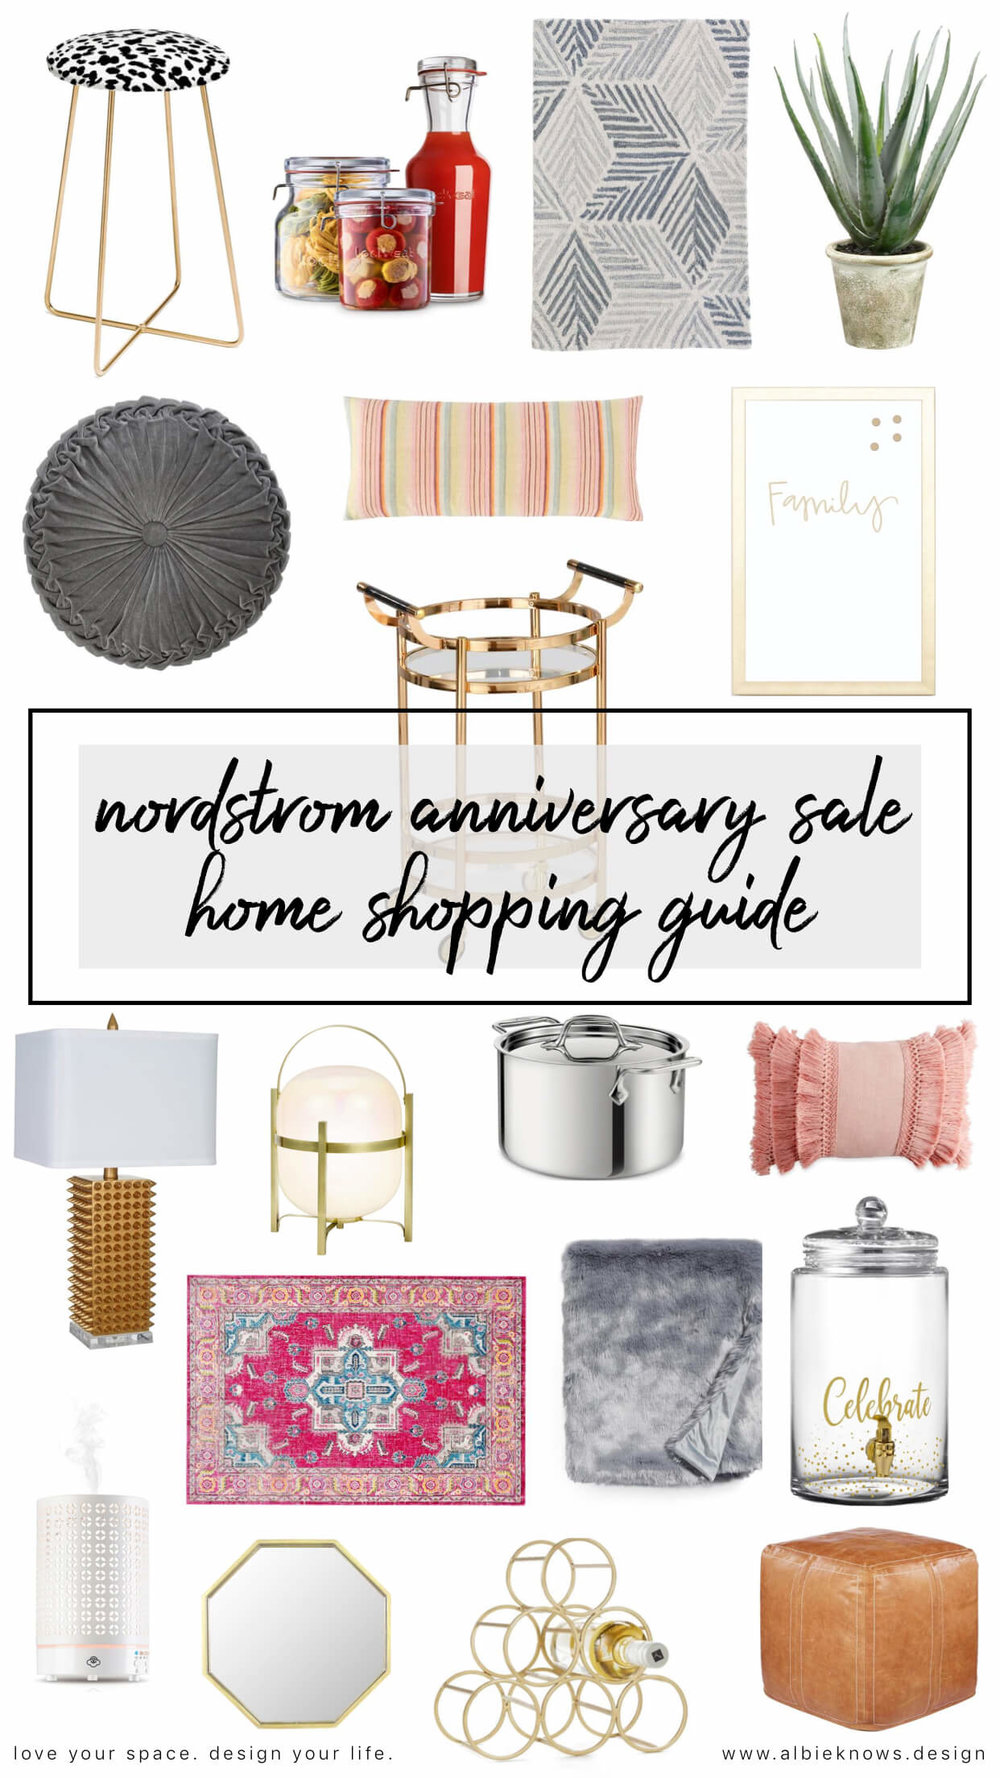 Albie Knows Nordstrom Anniversary Sale Home Finds 3.jpeg